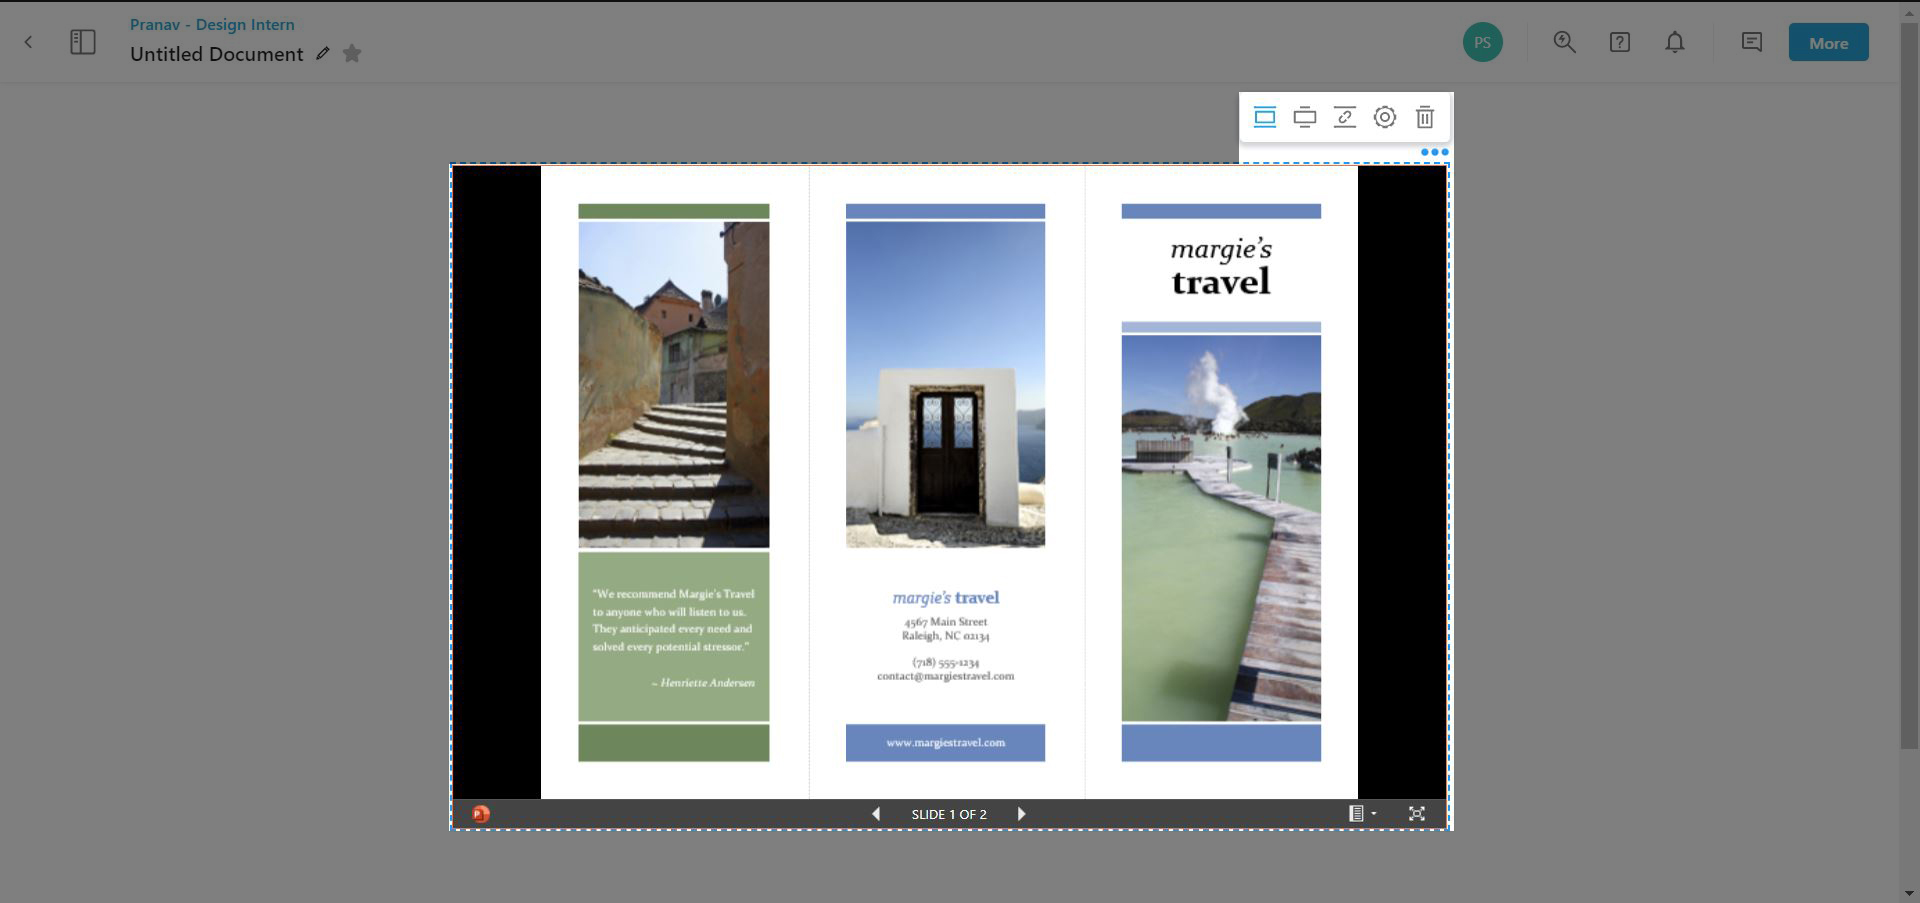 review of customization options available for powerpoint embed